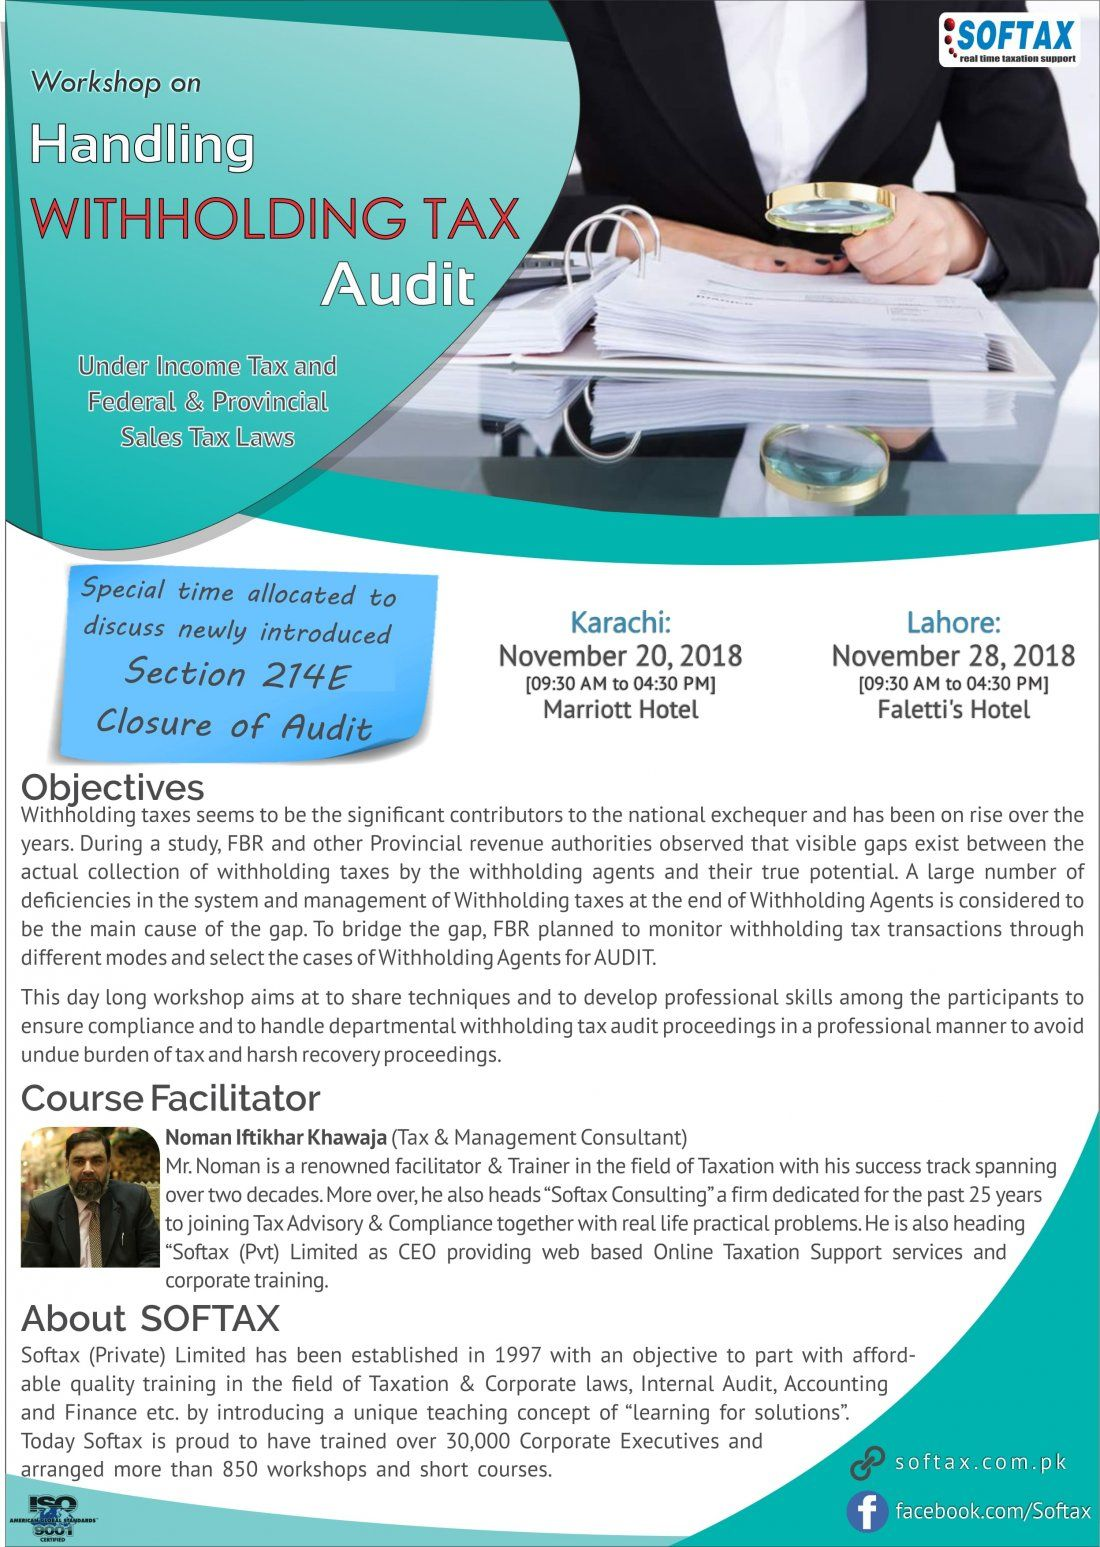 Workshop on Handling Withholding Tax Audit